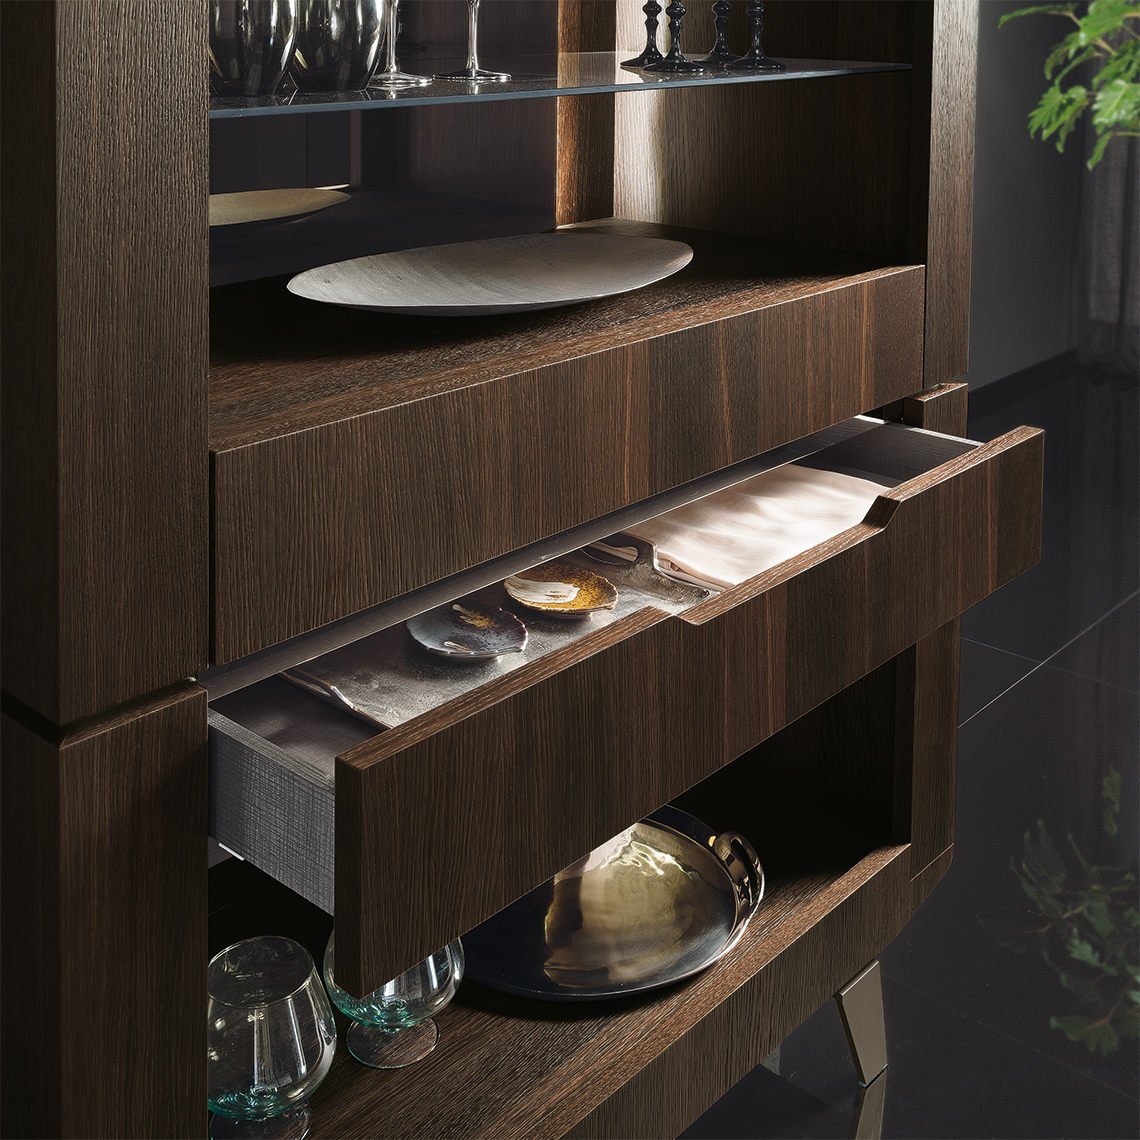 Accademia Dining Room Open Cabinet Details